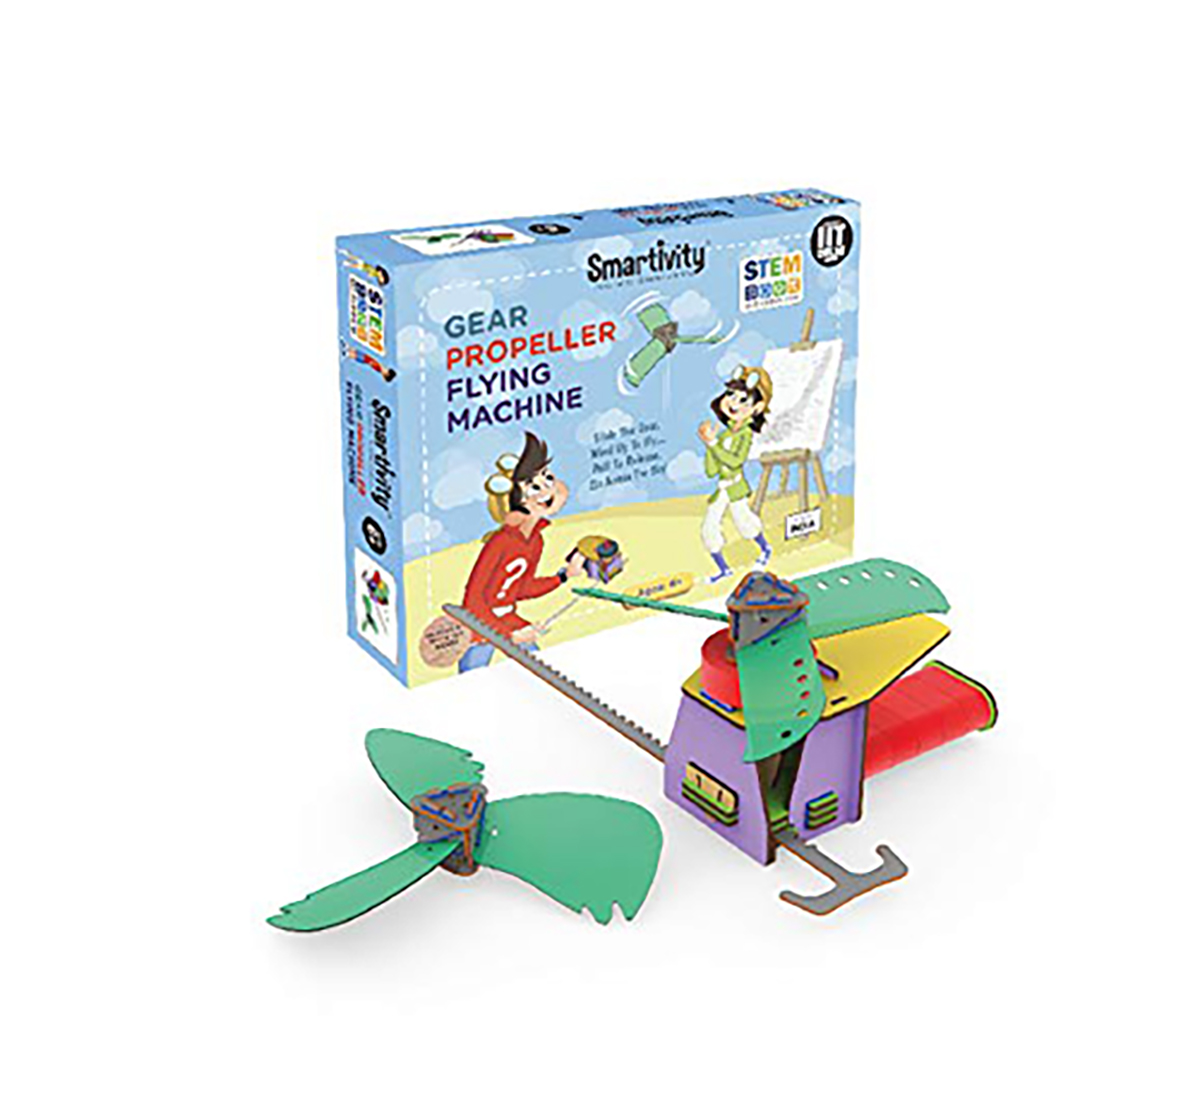 Smartivity | Smartivity Gear Propeller Flying Machine: Stem, Learning, Educational and Construction Activity Toy Gift for Kids age 6Y+ (Multi-Color)